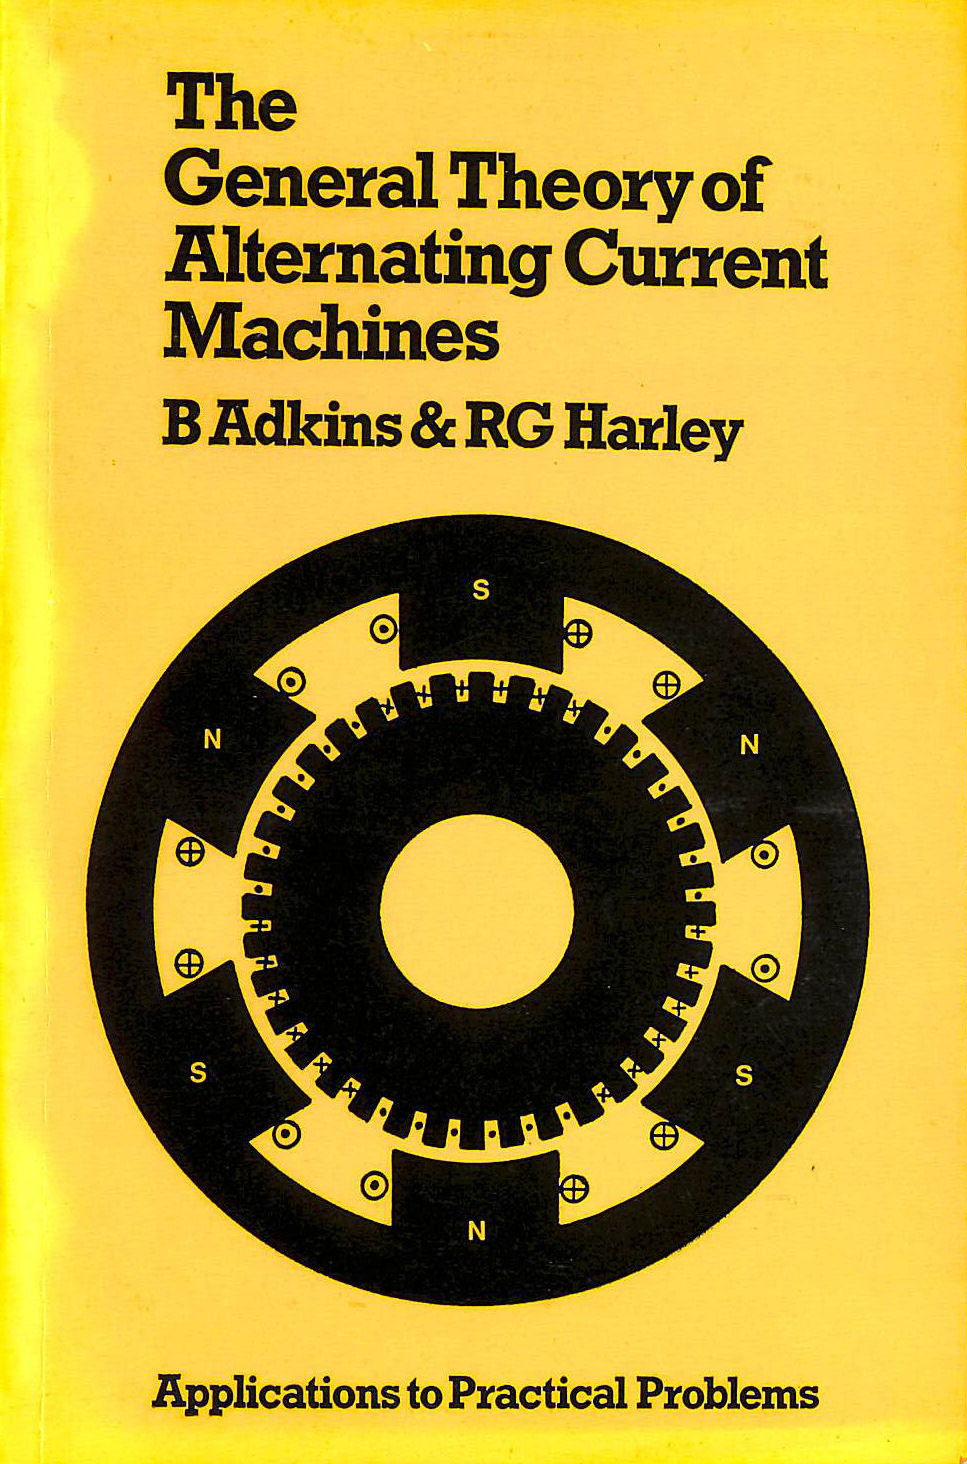 Image for The General Theory of Alternating Current Machines: Application to Practical Problems: Applications to Practical Problems (Science Paperbacks)